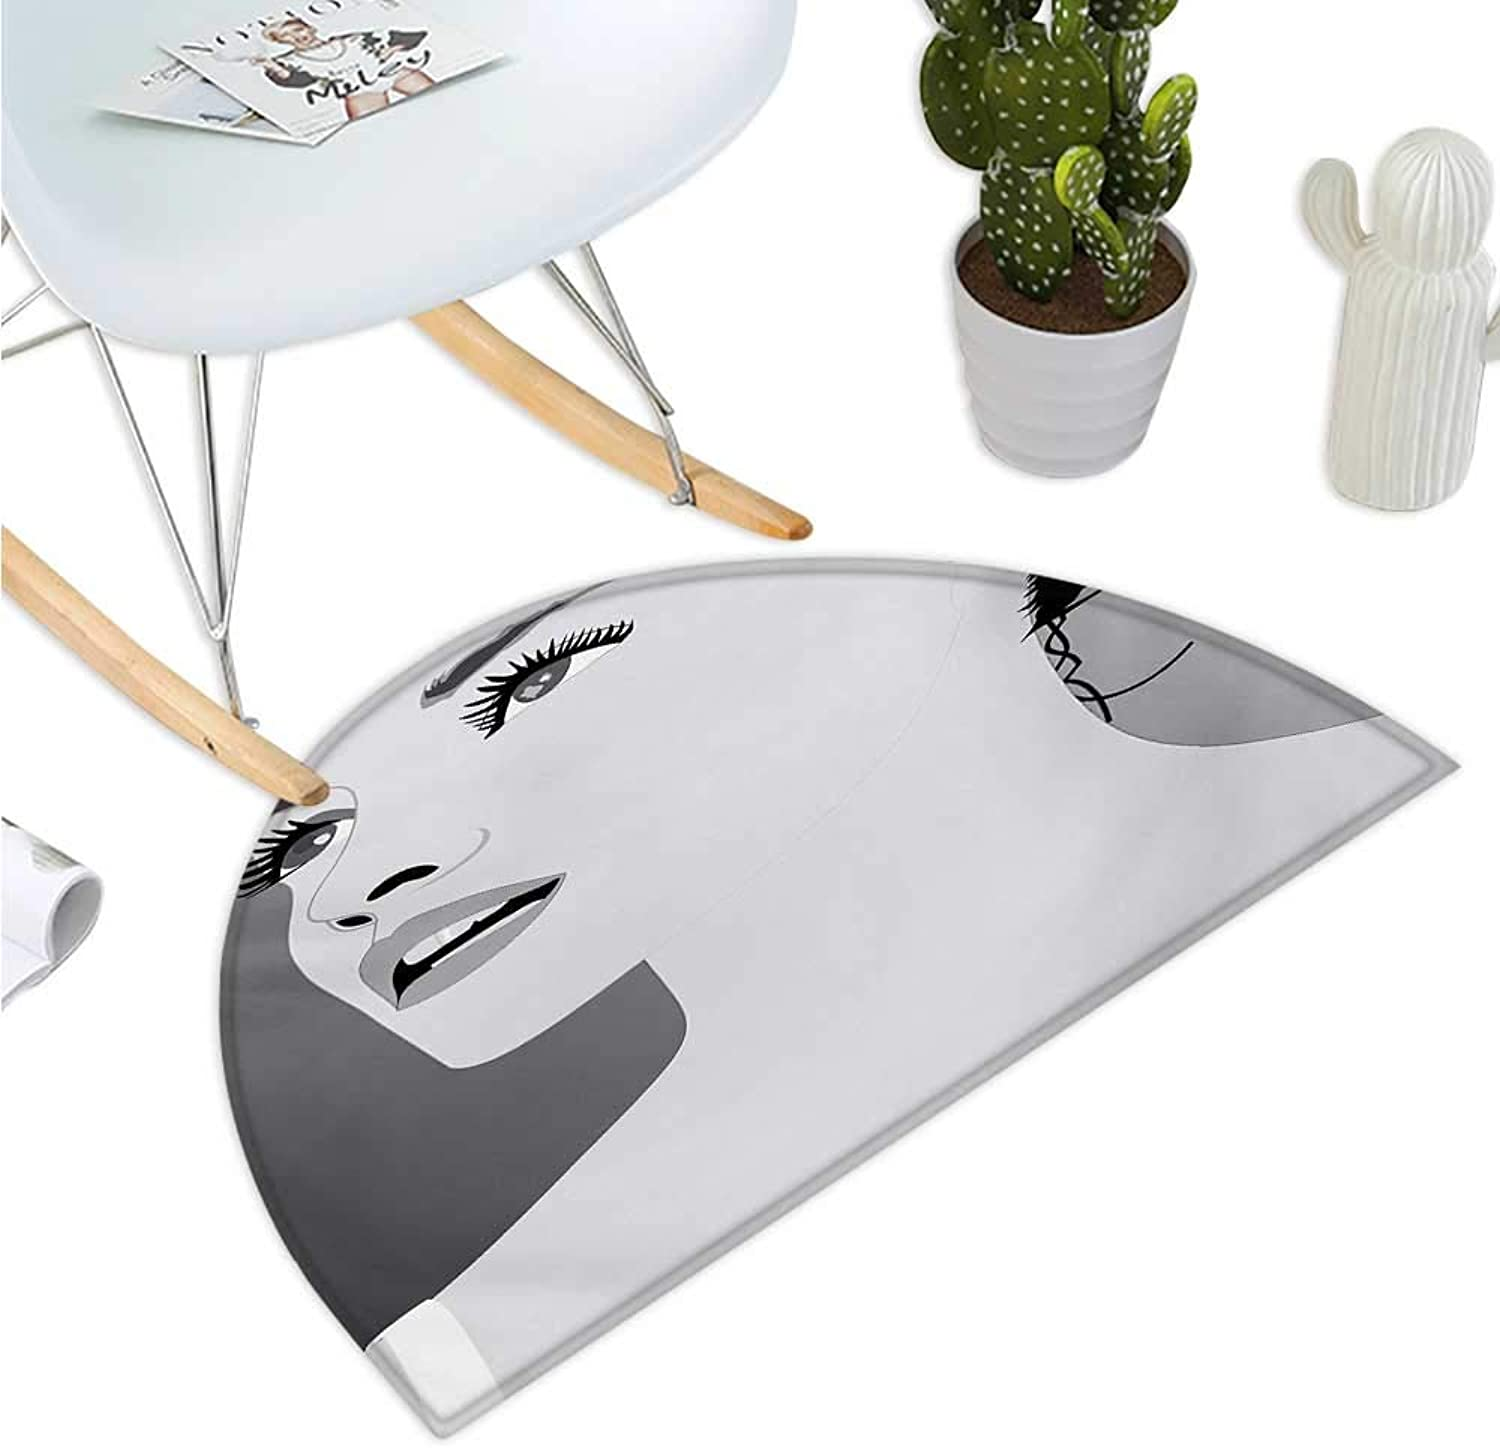 Girls Semicircular Cushion Young Gentle Woman with Make Up Looking in Digital Stylized She Artsy Graphic Print Bathroom Mat H 47.2  xD 70.8  Black Grey